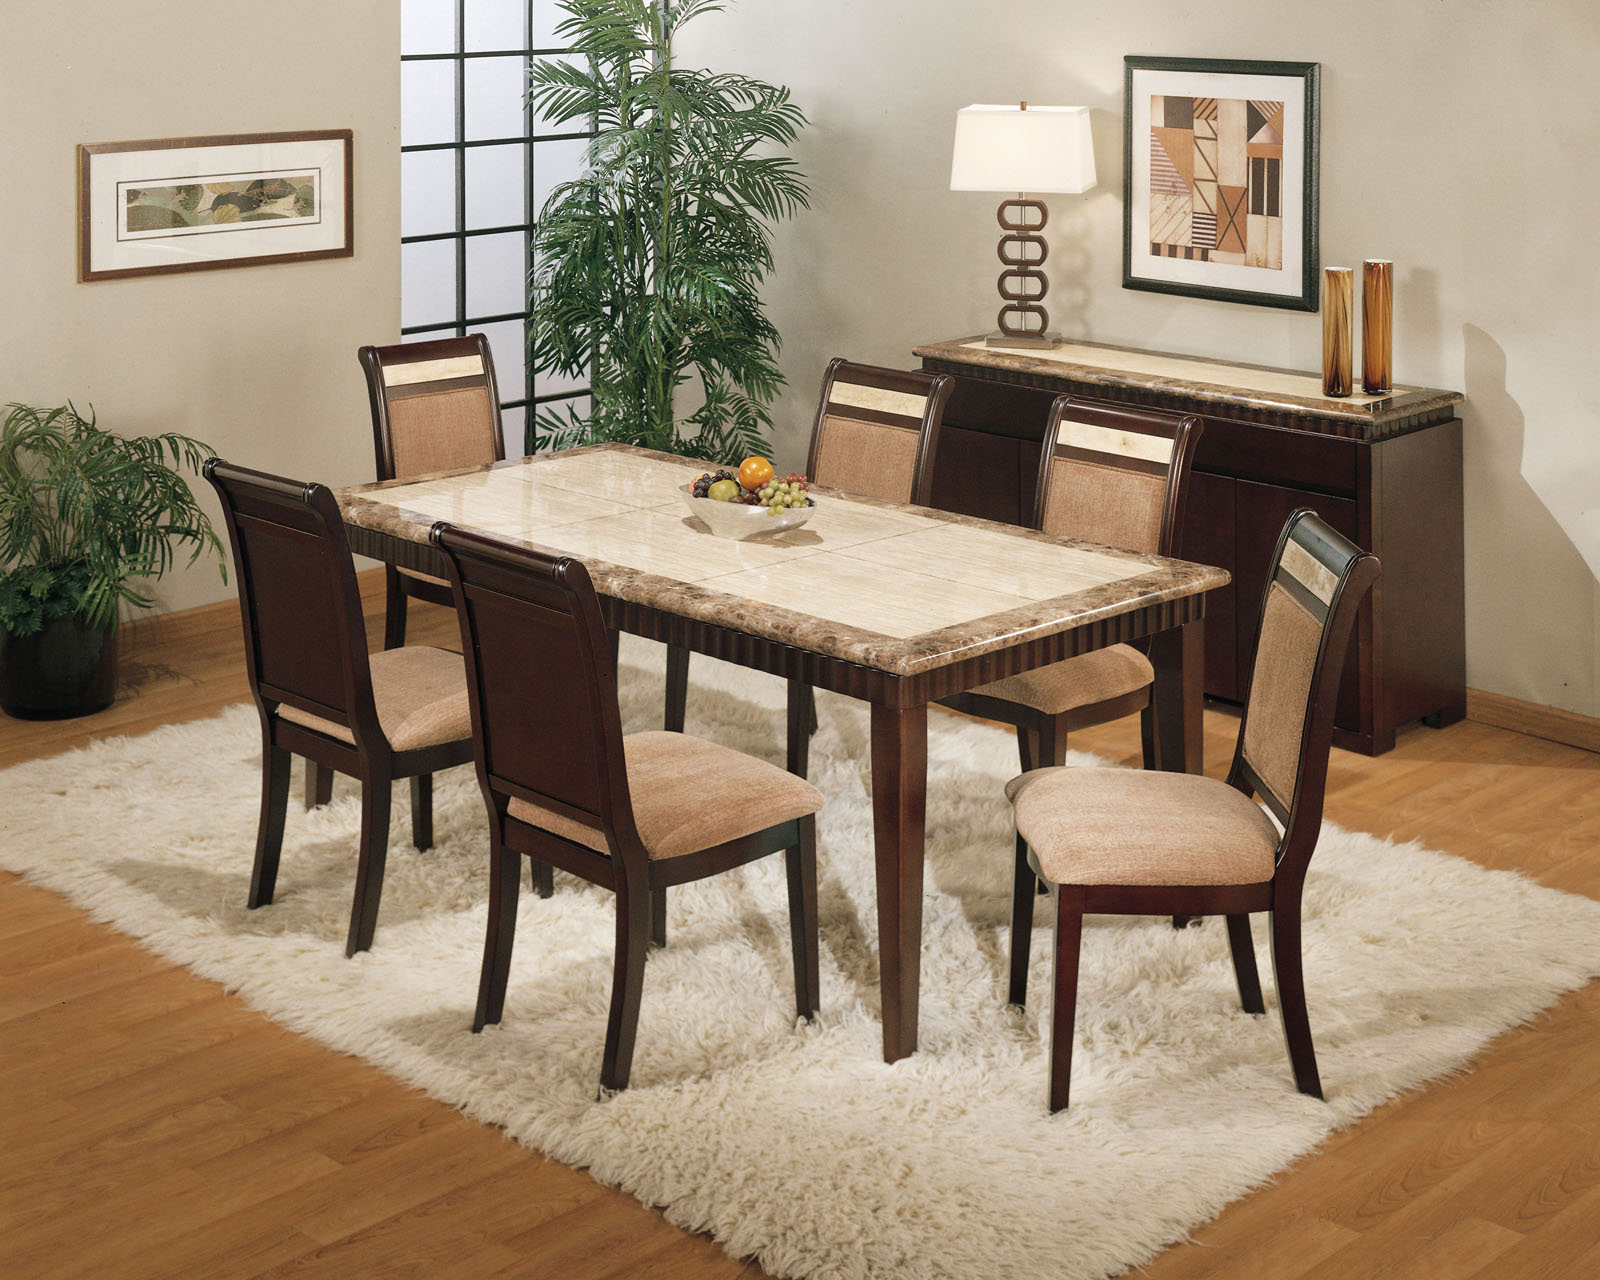 Granite Dining Room Tables And Chairs Classy Granite Dining Table Set  Collection Of Best Home Design Ideas. Review